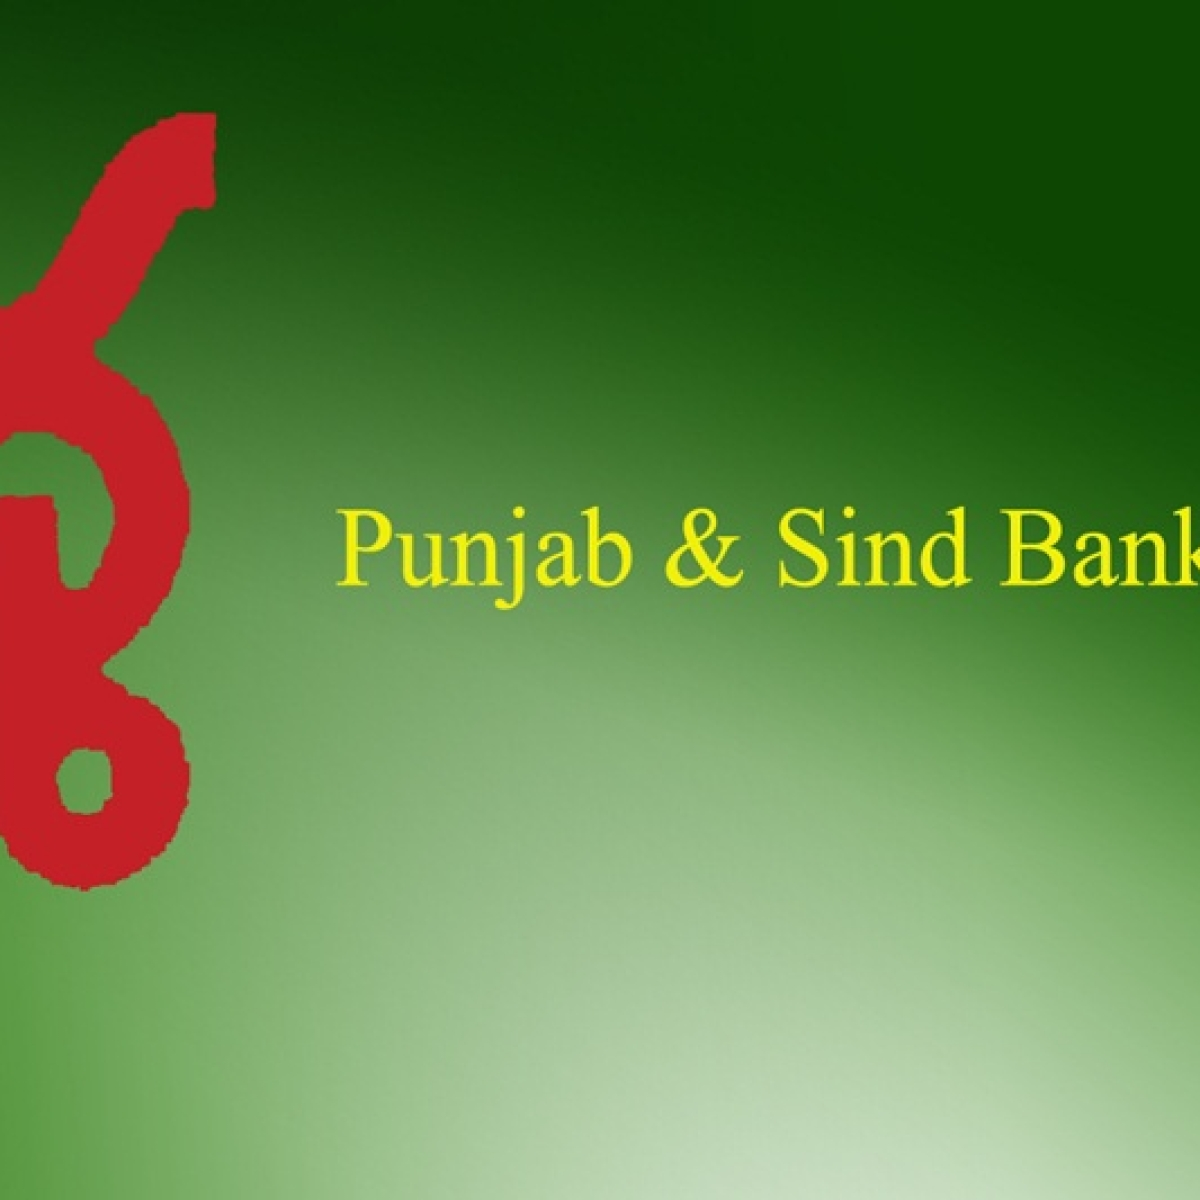 Punjab & Sind Bank cuts MCLR by up to 20 basis points